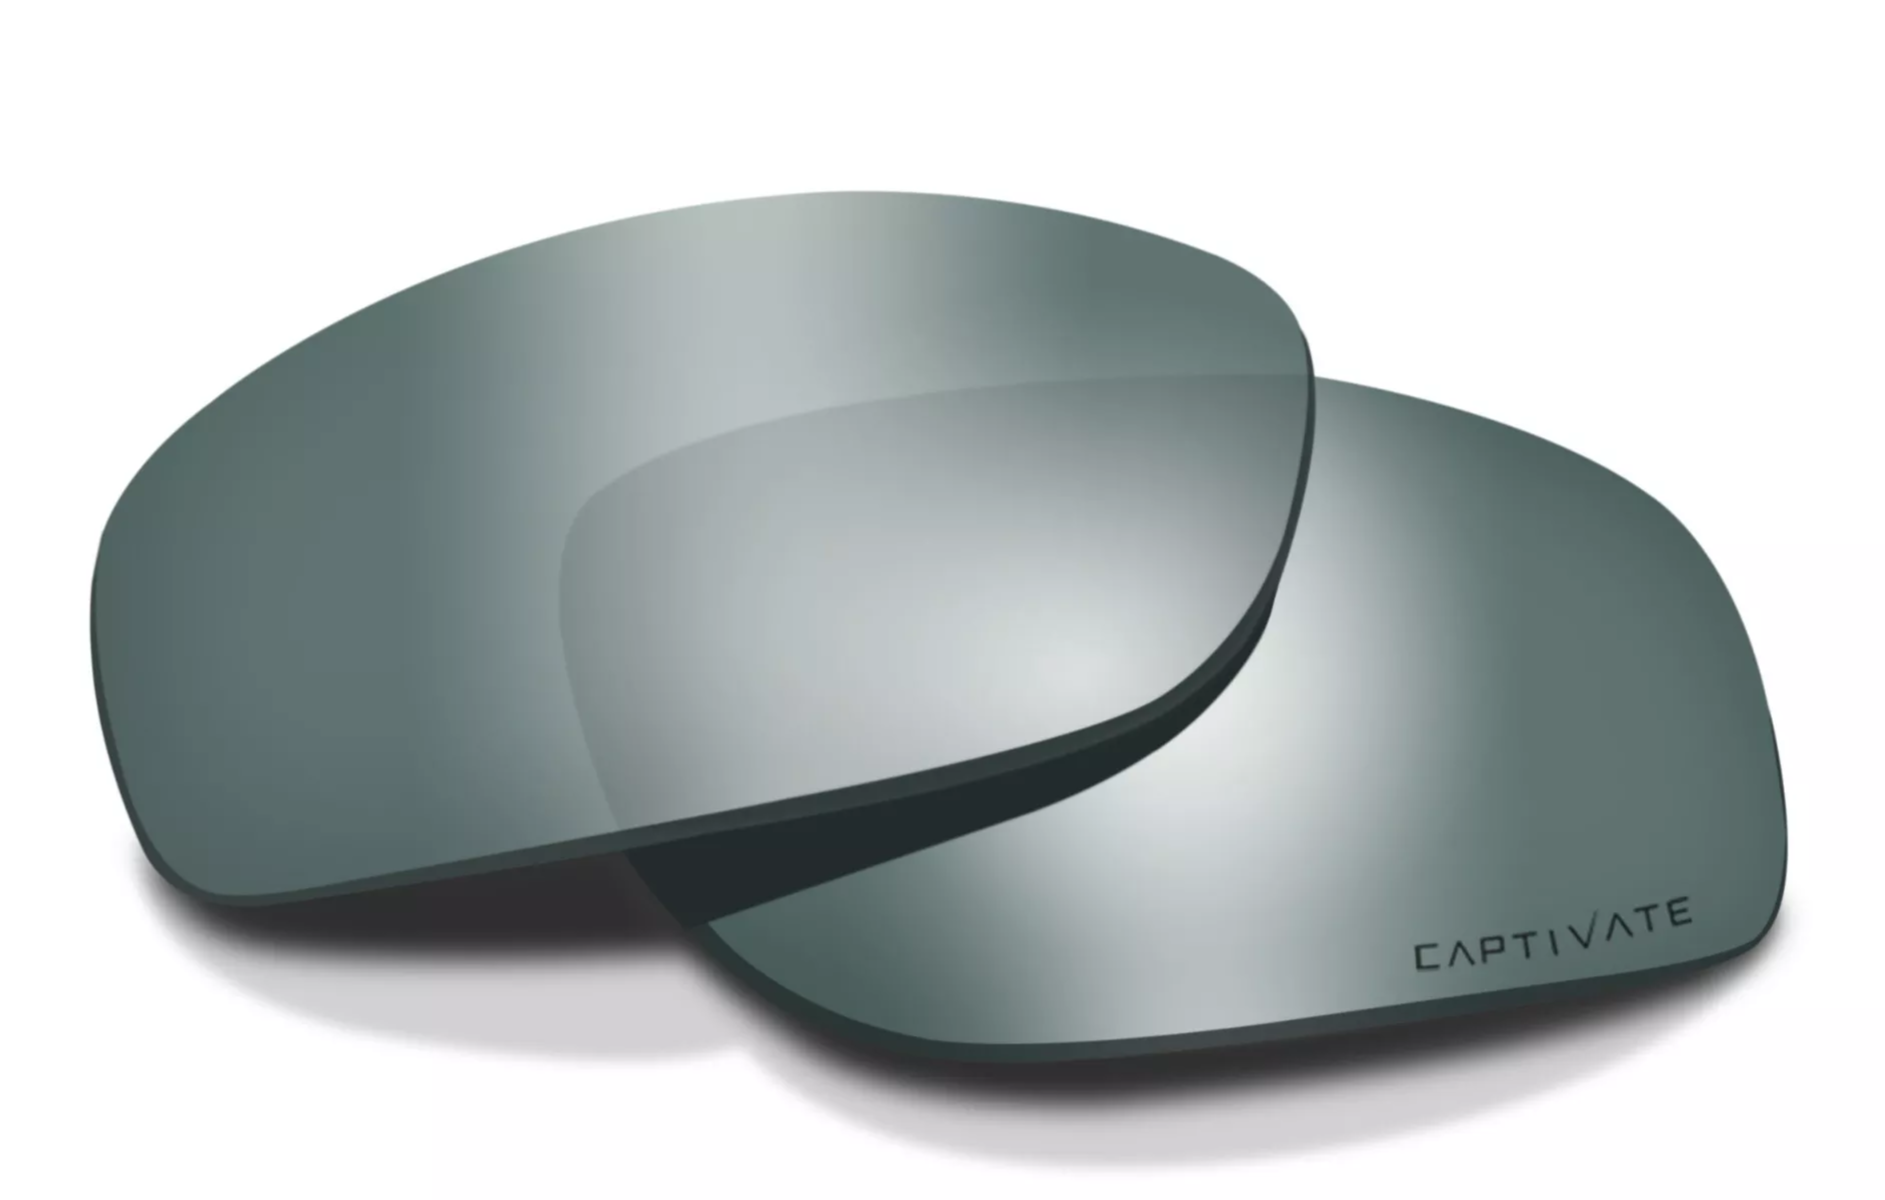 Breach CAPTIVATE™ Polarized Lenses Image